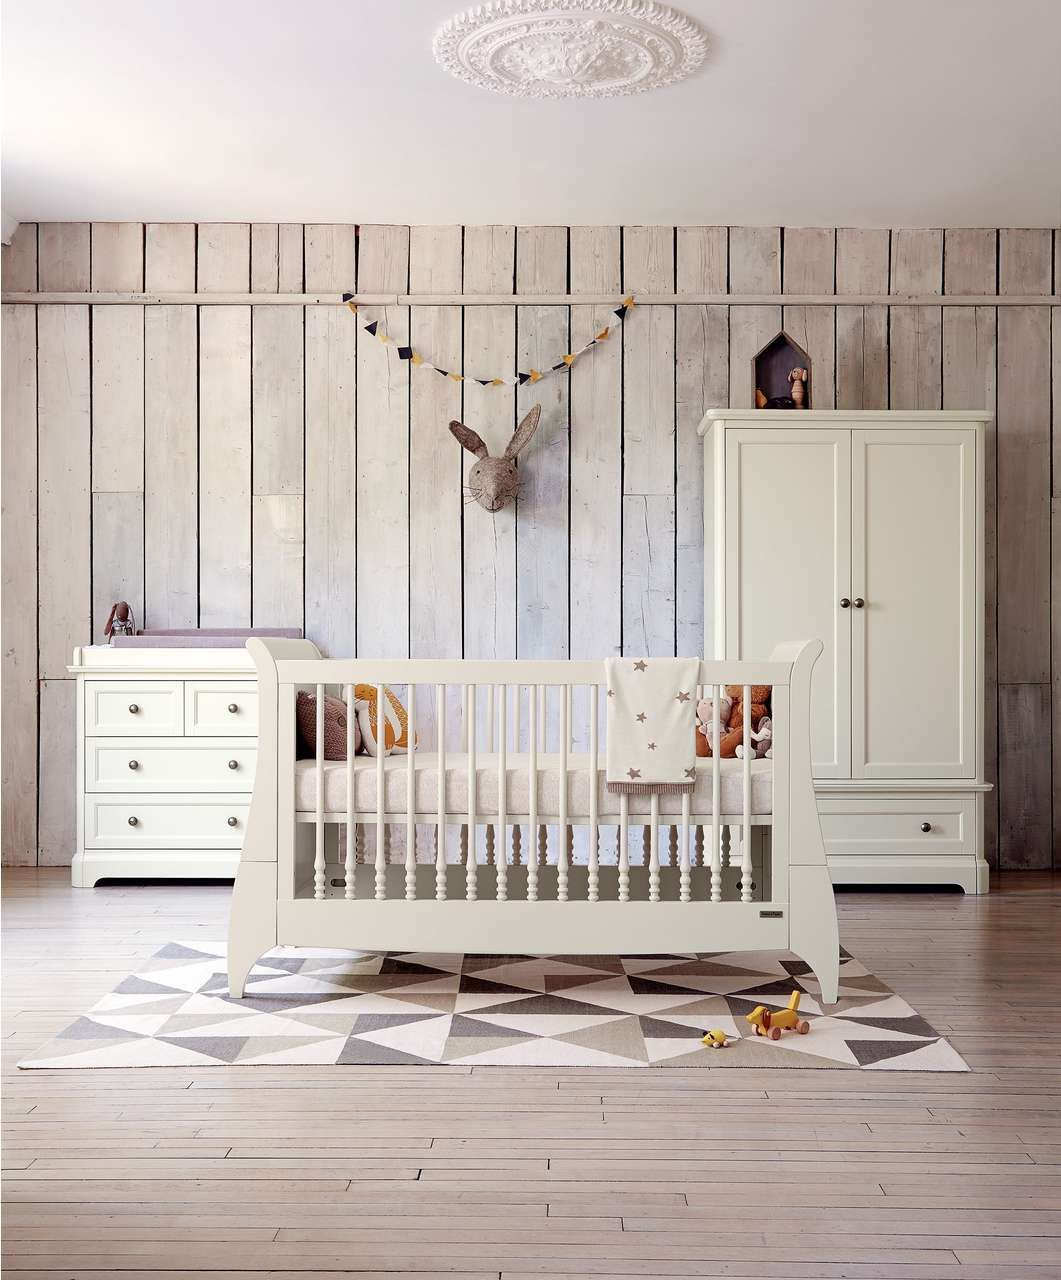 Attractive This Orchard 3 Piece Set Completes Your Childu0027s Nursery All In One With  Cot/Toddler Bed, Dresser With Changer And Wardrobe. Get Yours From Mamas U0026  Papas.